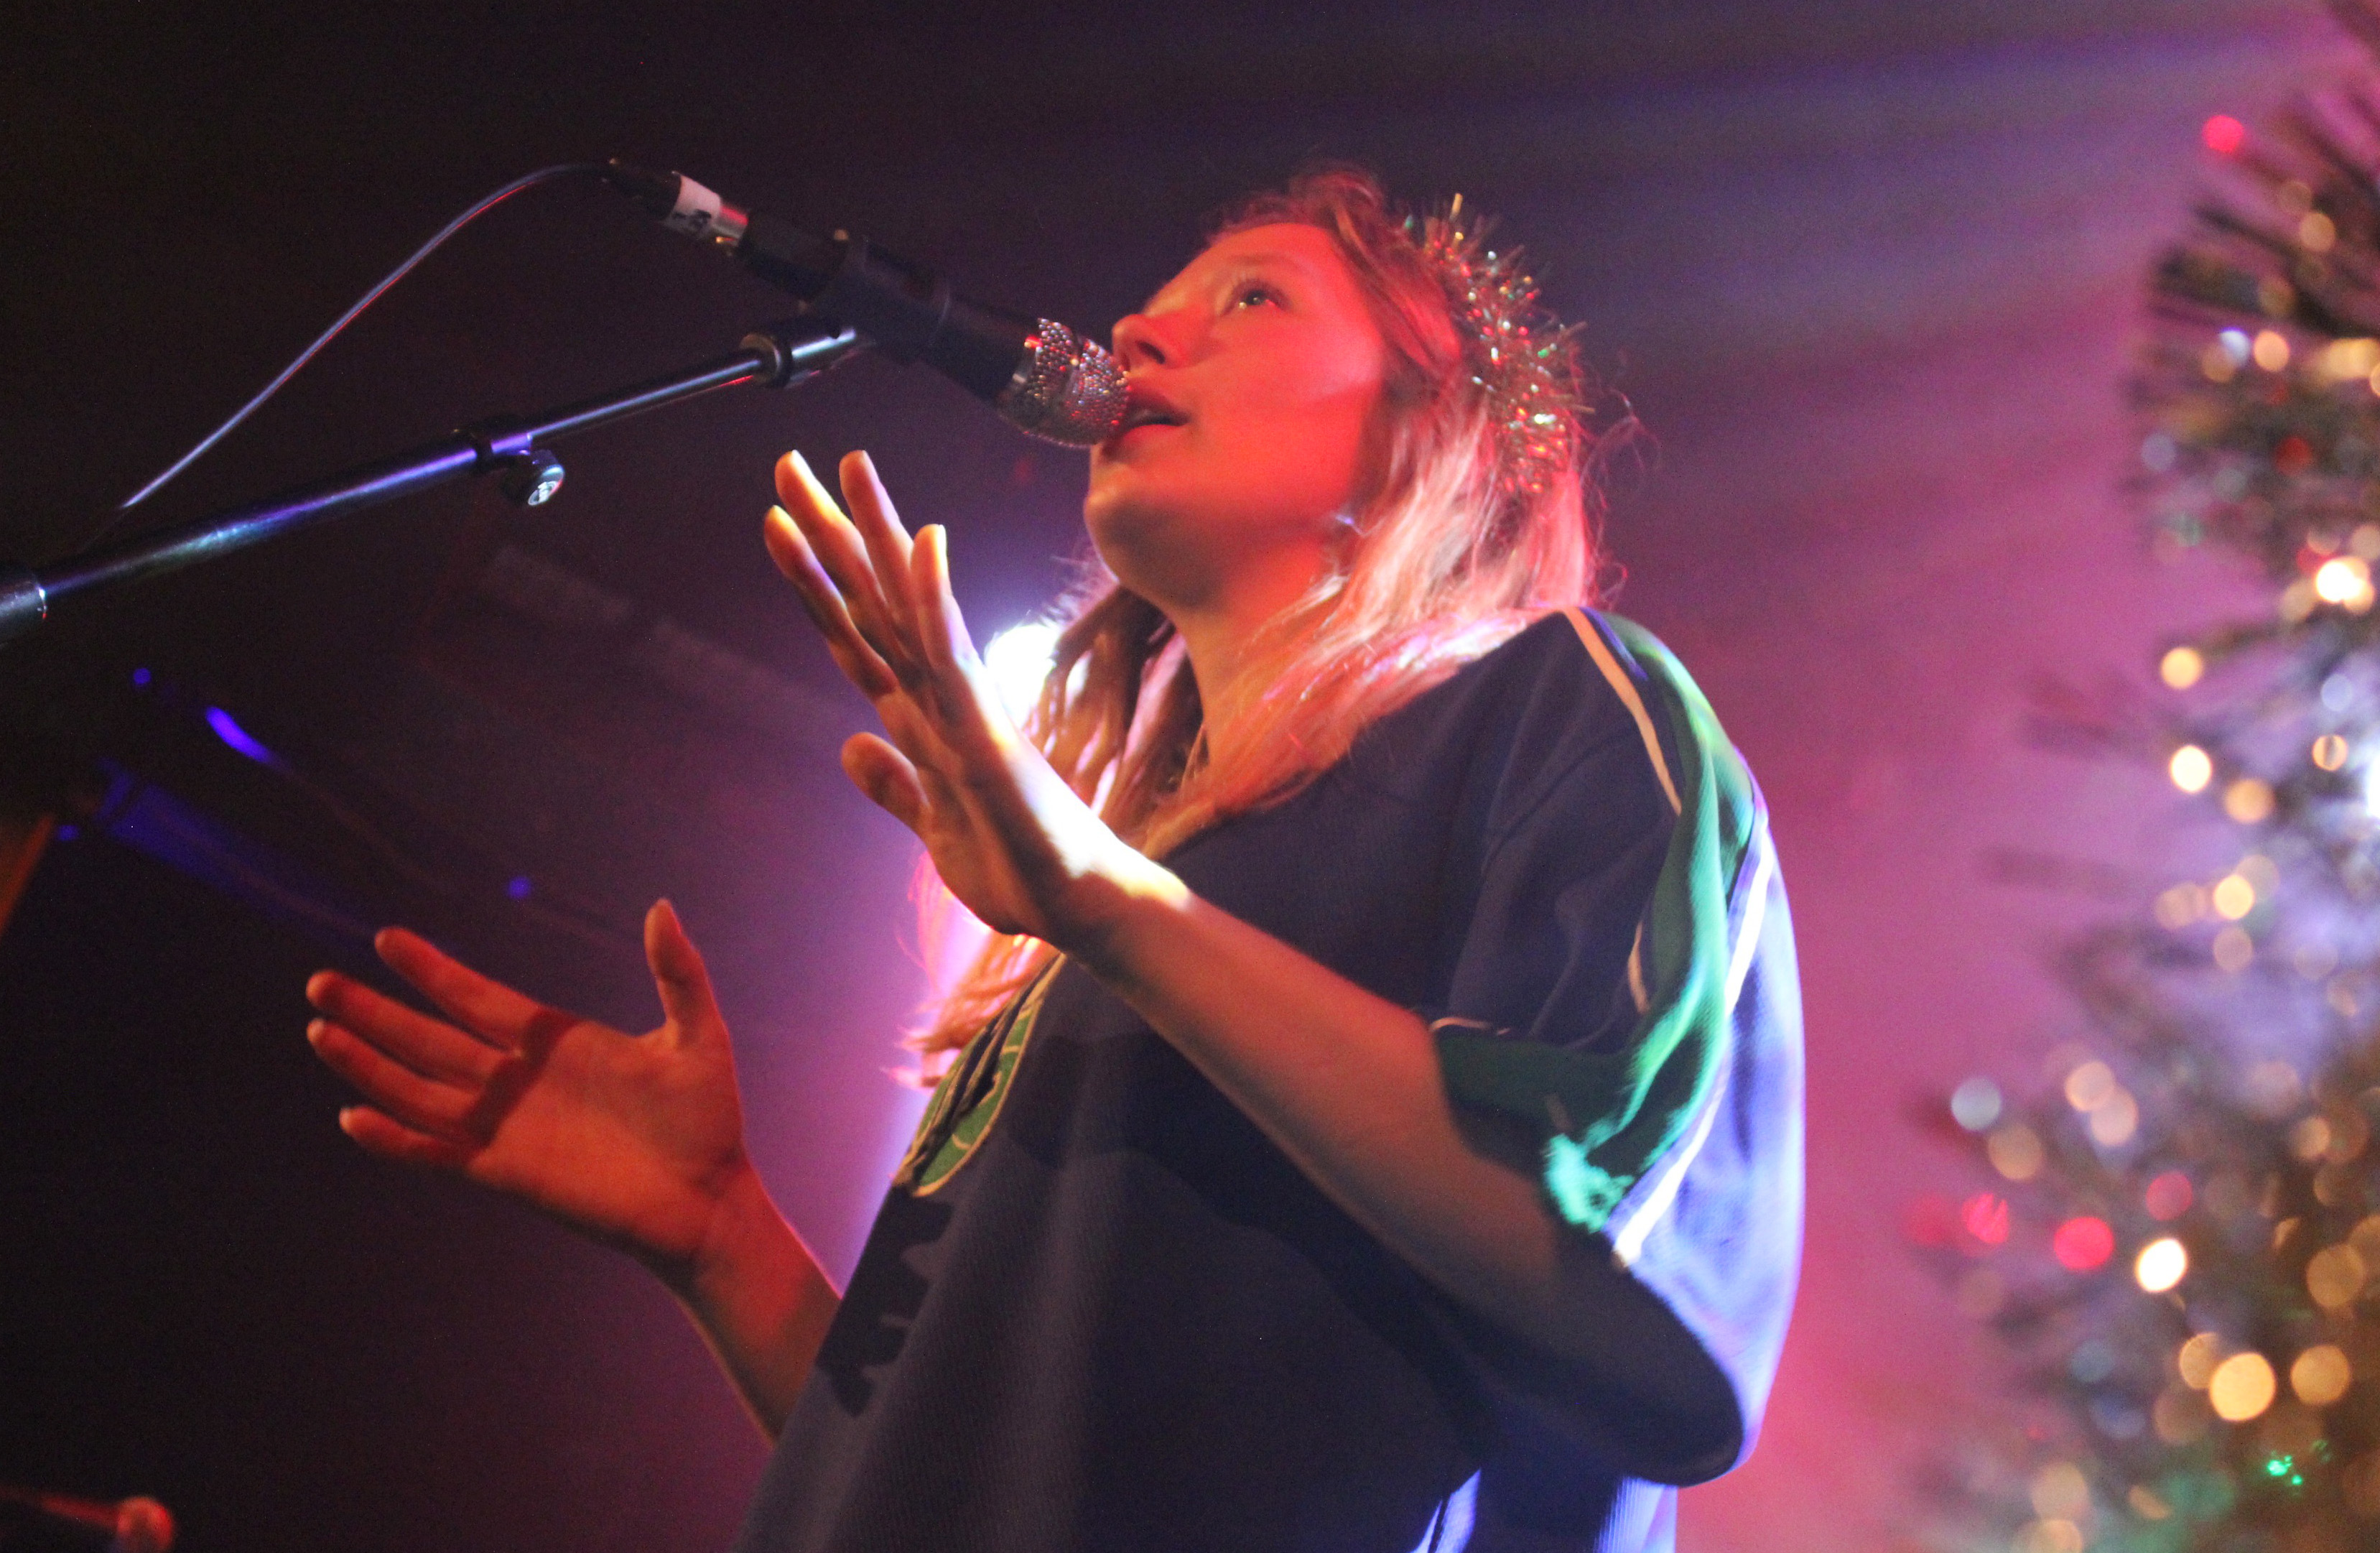 FBi Presents Phantastic Ferniture's Xmas Extravaganza at Oxford Art Factory | Photo by Elisha May